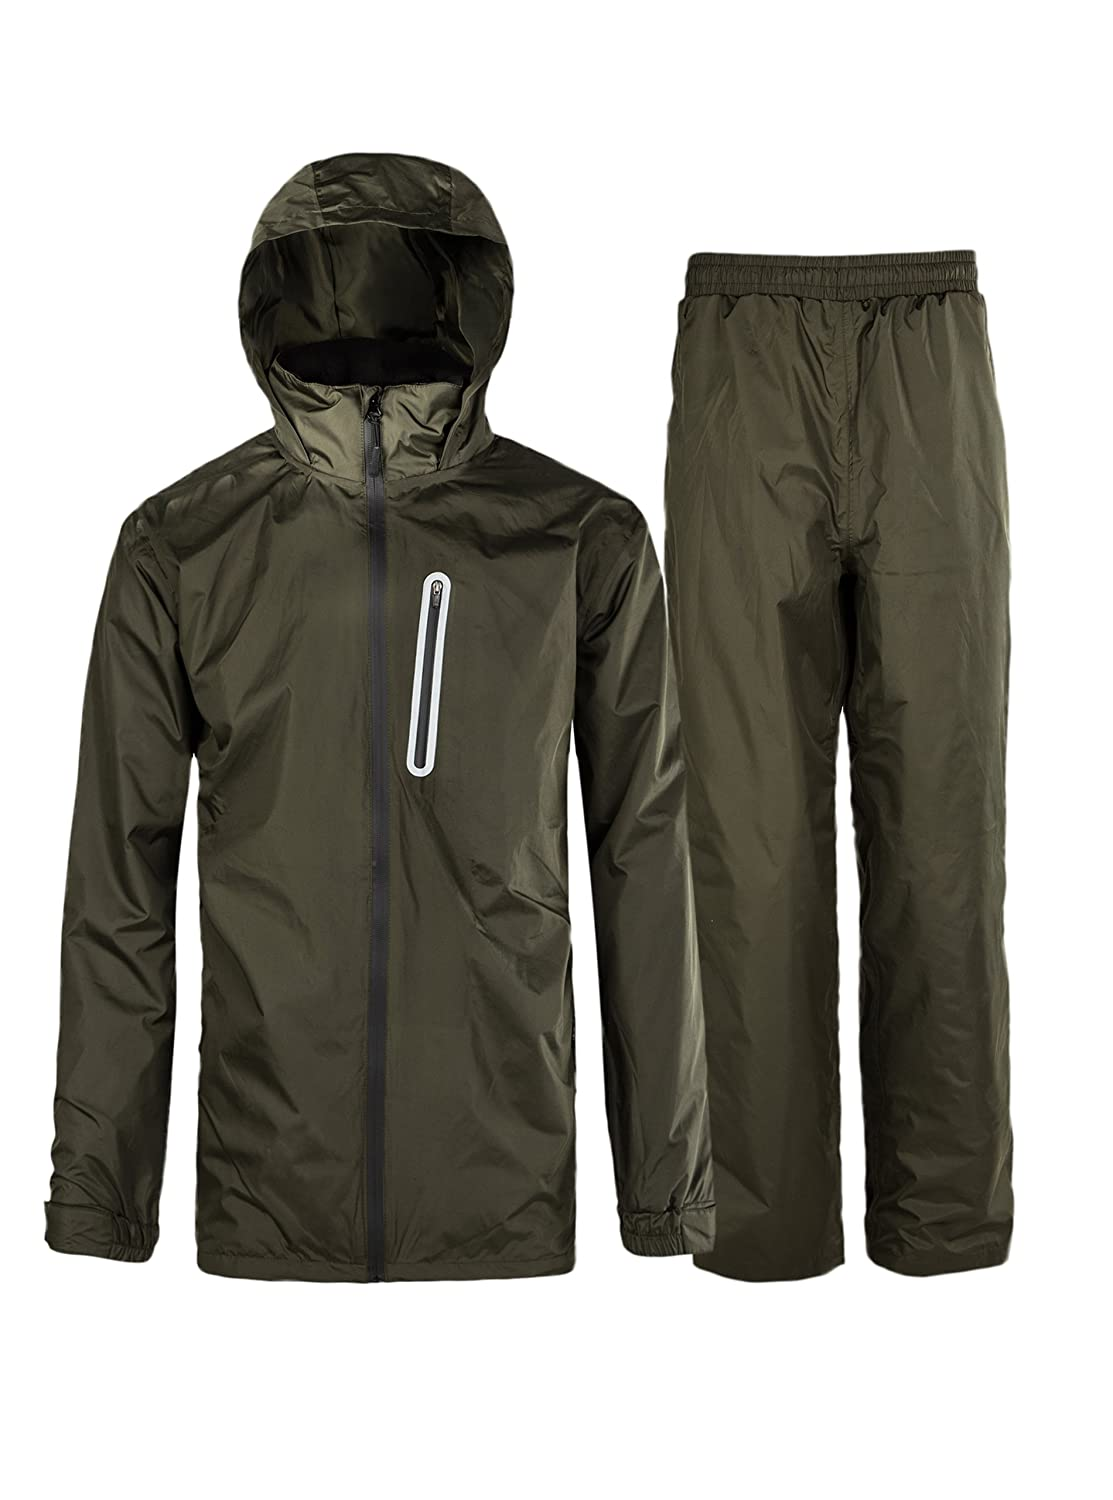 Rain Suit for Men Waterproof Hooded Rainwear (Jacket & Trouser Suit) ZITY ZITYRAINSUIT0001